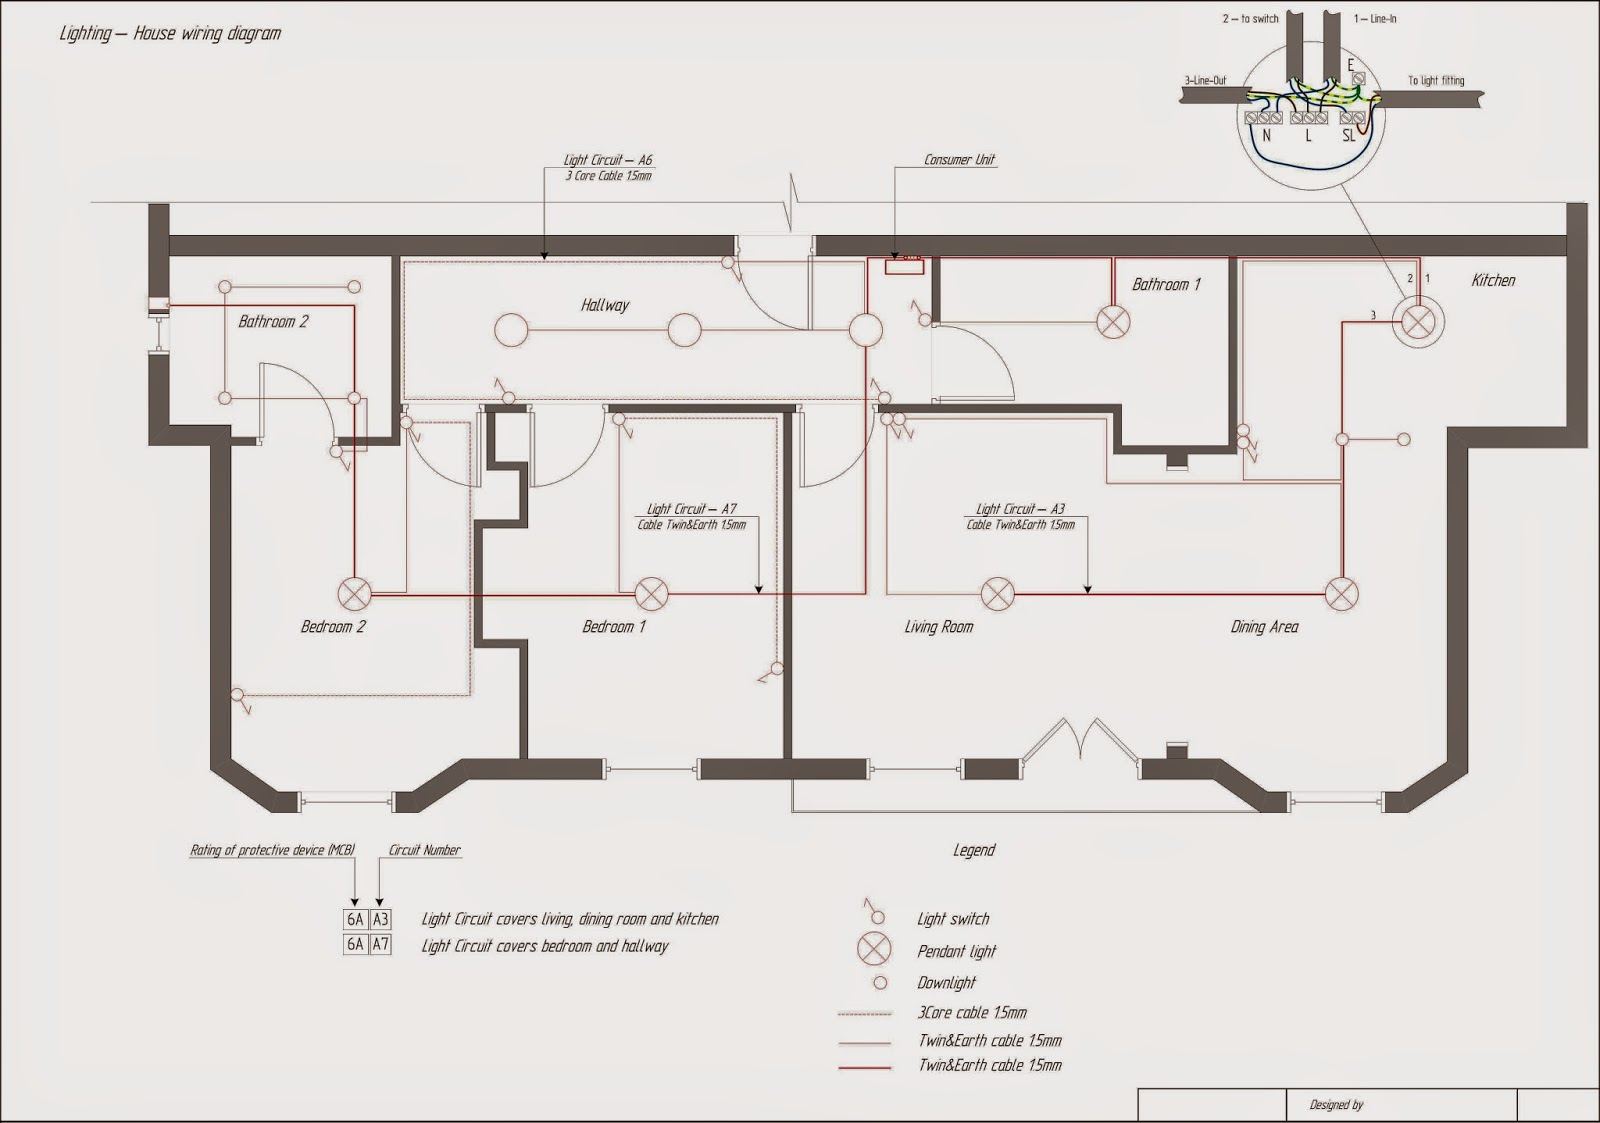 DIAGRAM] Commercial Building Wiring Diagram FULL Version HD Quality Wiring  Diagram - LINDIAGRAM.ARTEMISMAIL.FRDiagram Database